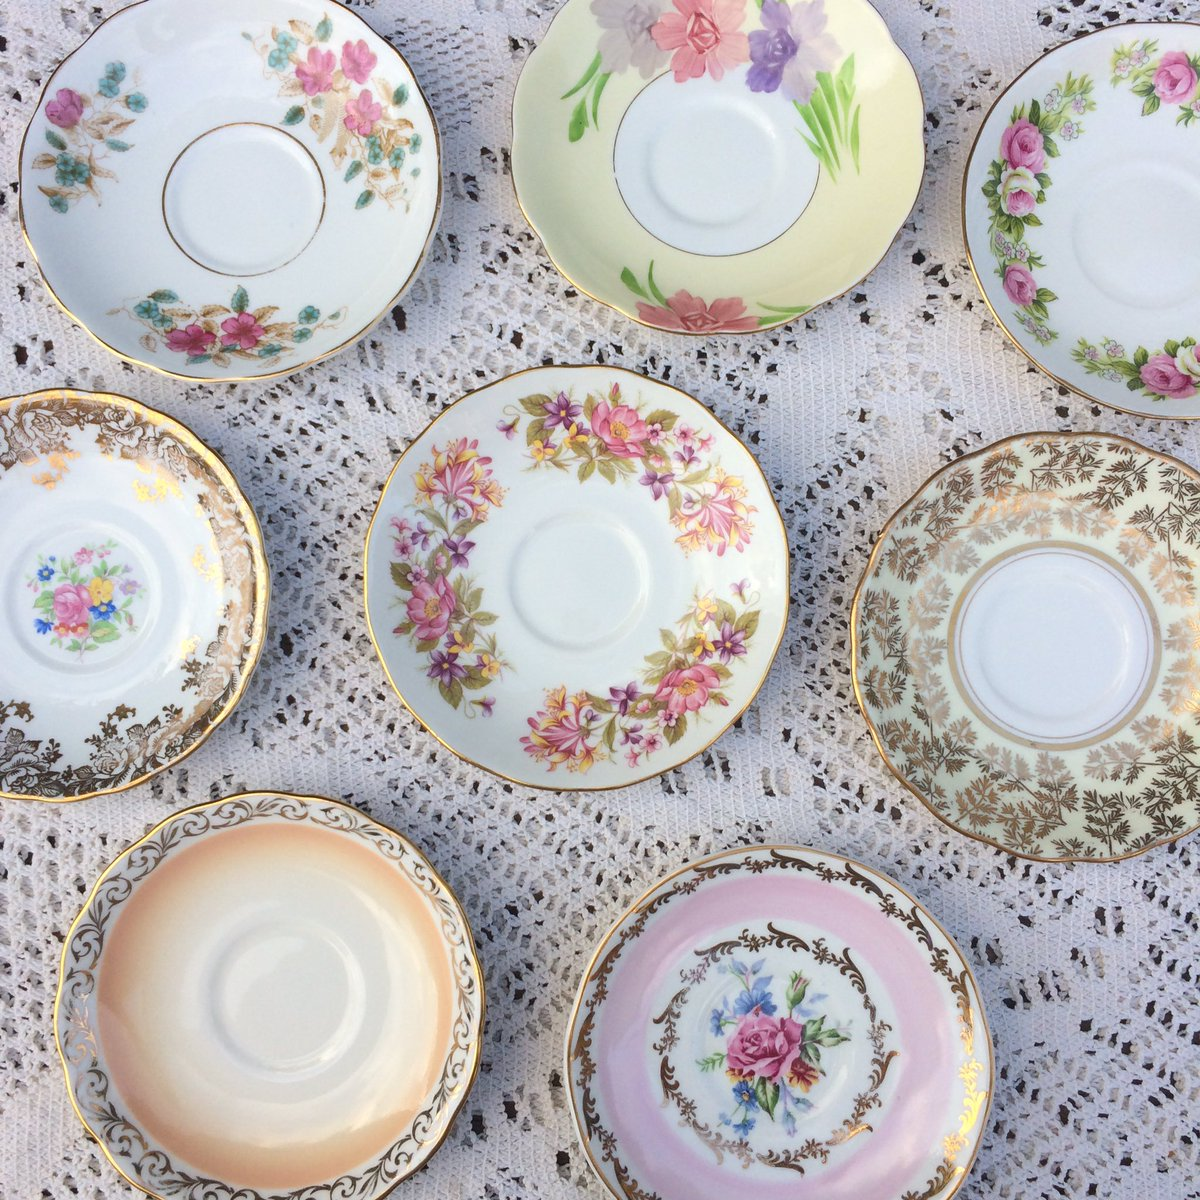 It&#39;s Friday! Time to say hello to all our new followers and thank you for this weeks RT &amp;  #FollowFriday #vintage #tea #afternoonteaweek <br>http://pic.twitter.com/SrkHe46xeB